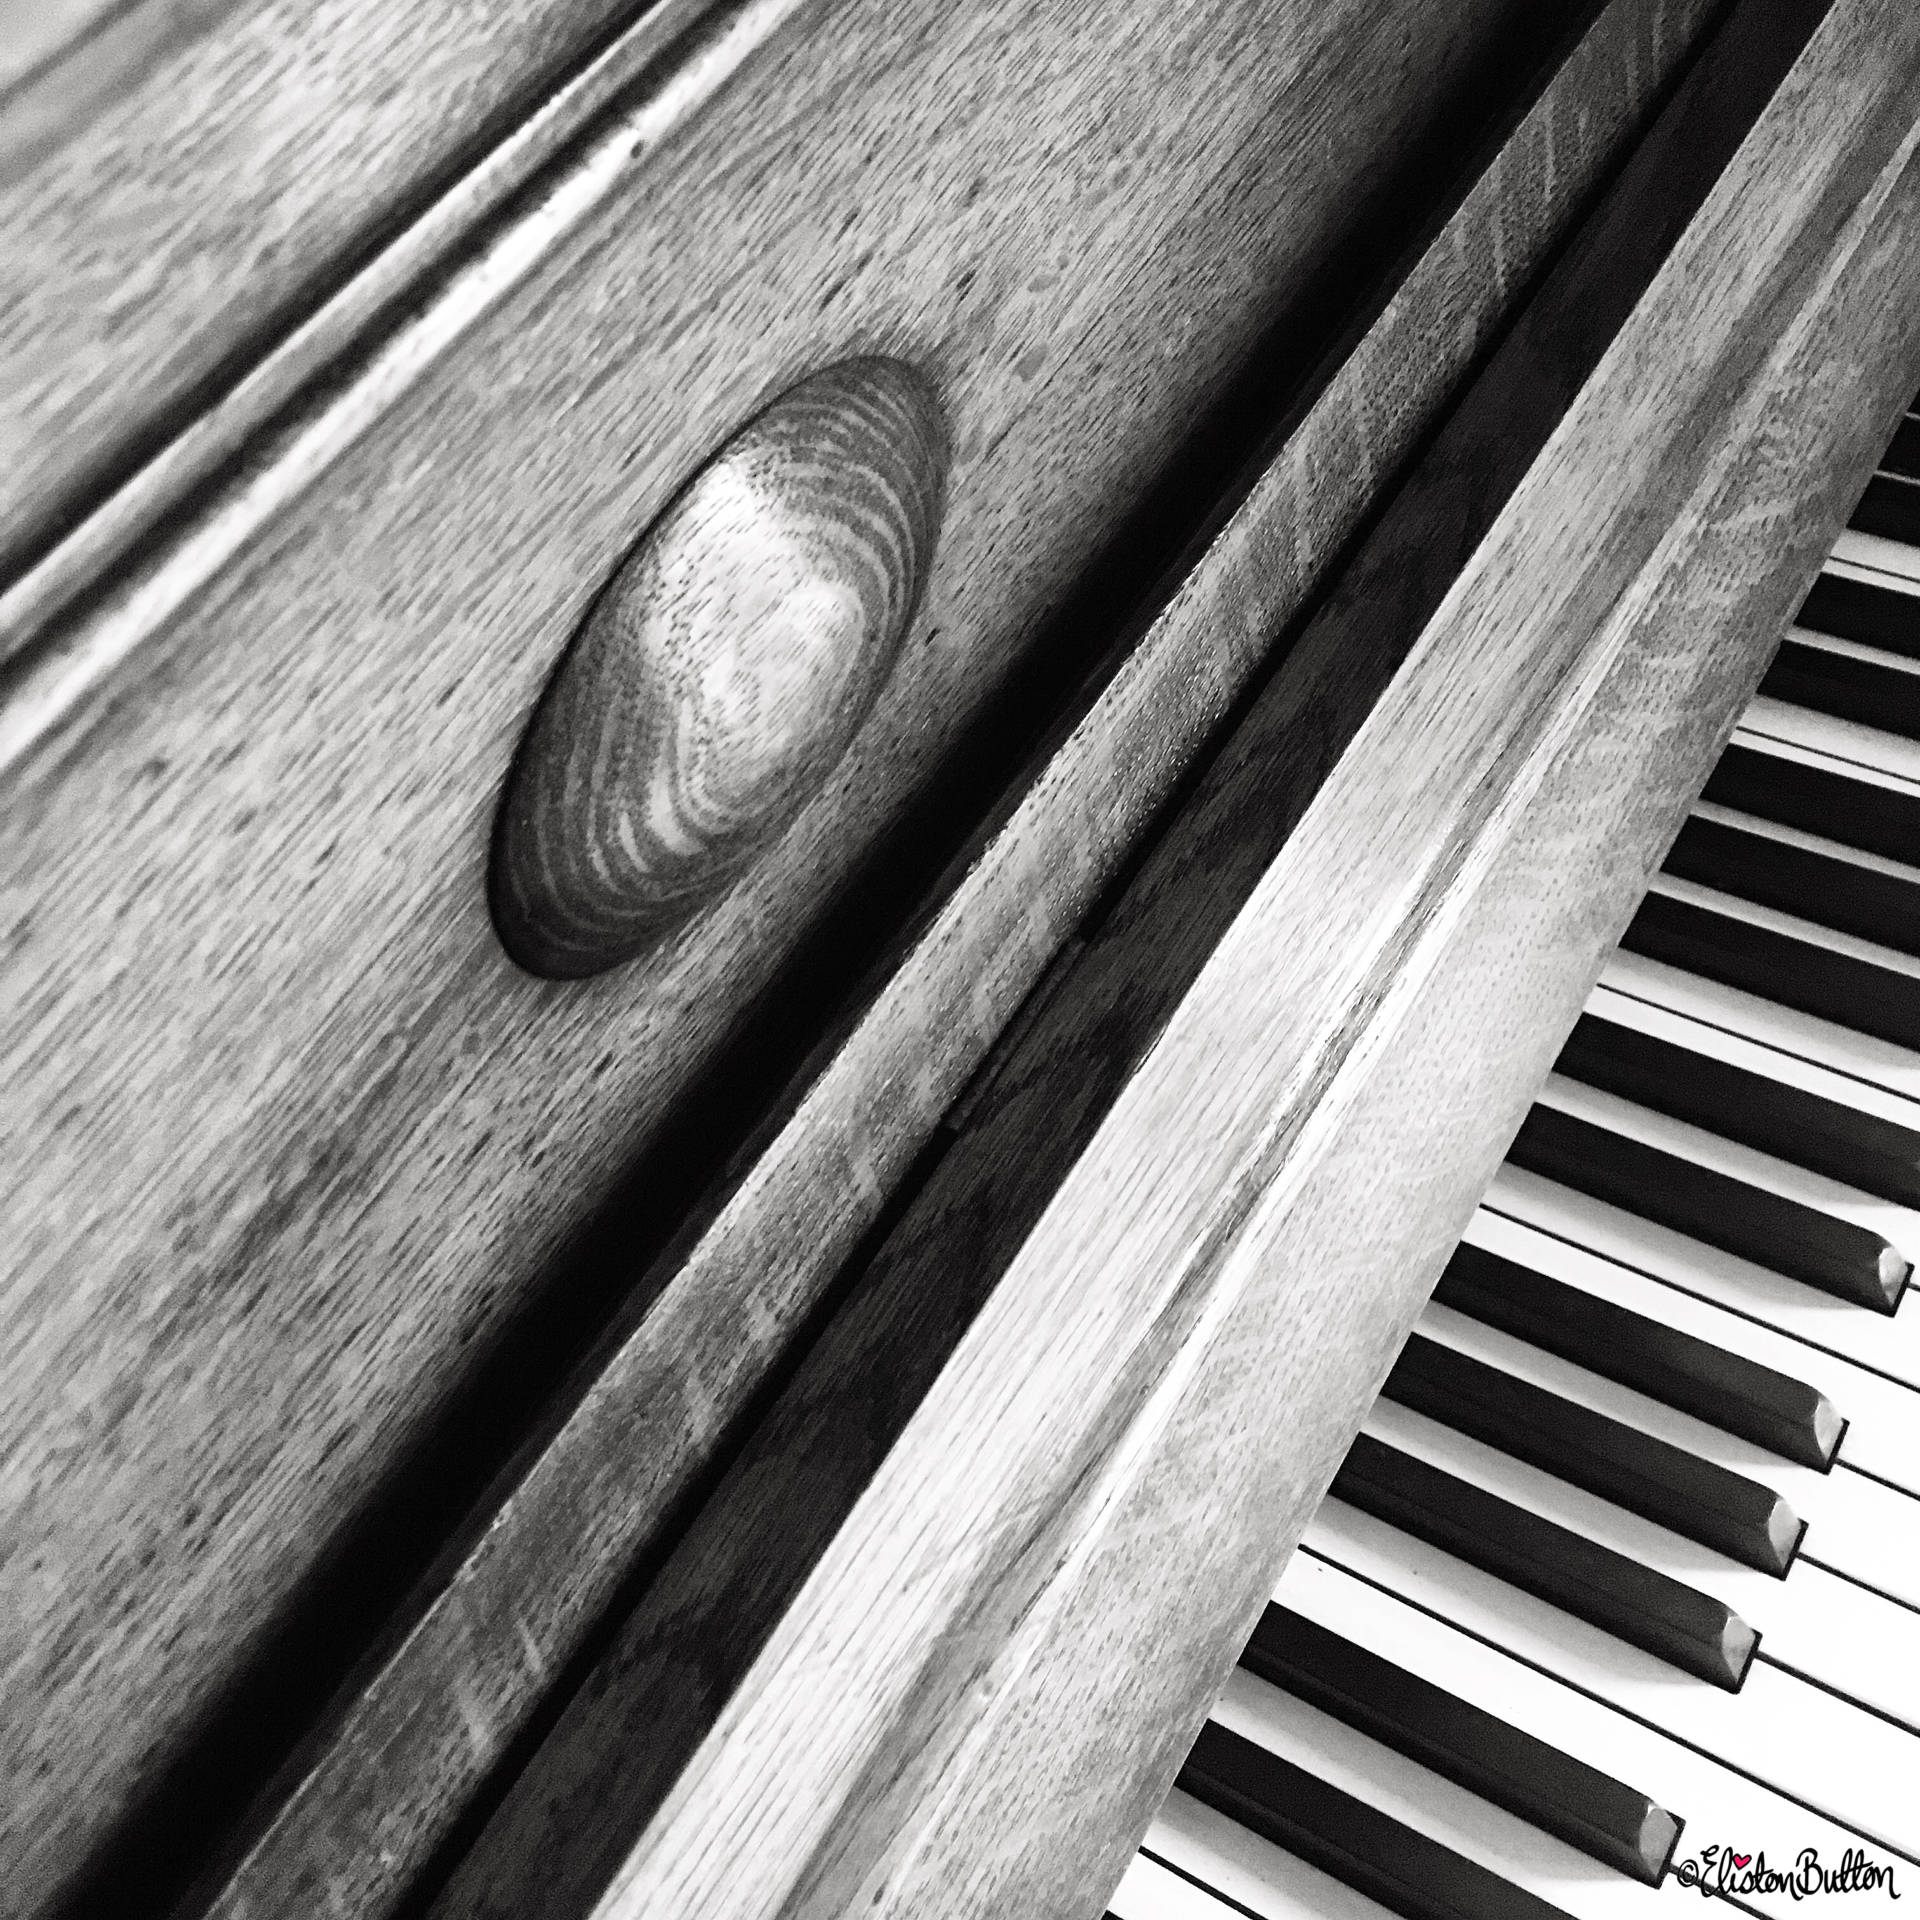 Day 01 - Key - Vintage Wooden Upright Piano - Photo-a-Day – June 2016 at www.elistonbutton.com - Eliston Button - That Crafty Kid – Art, Design, Craft & Adventure.